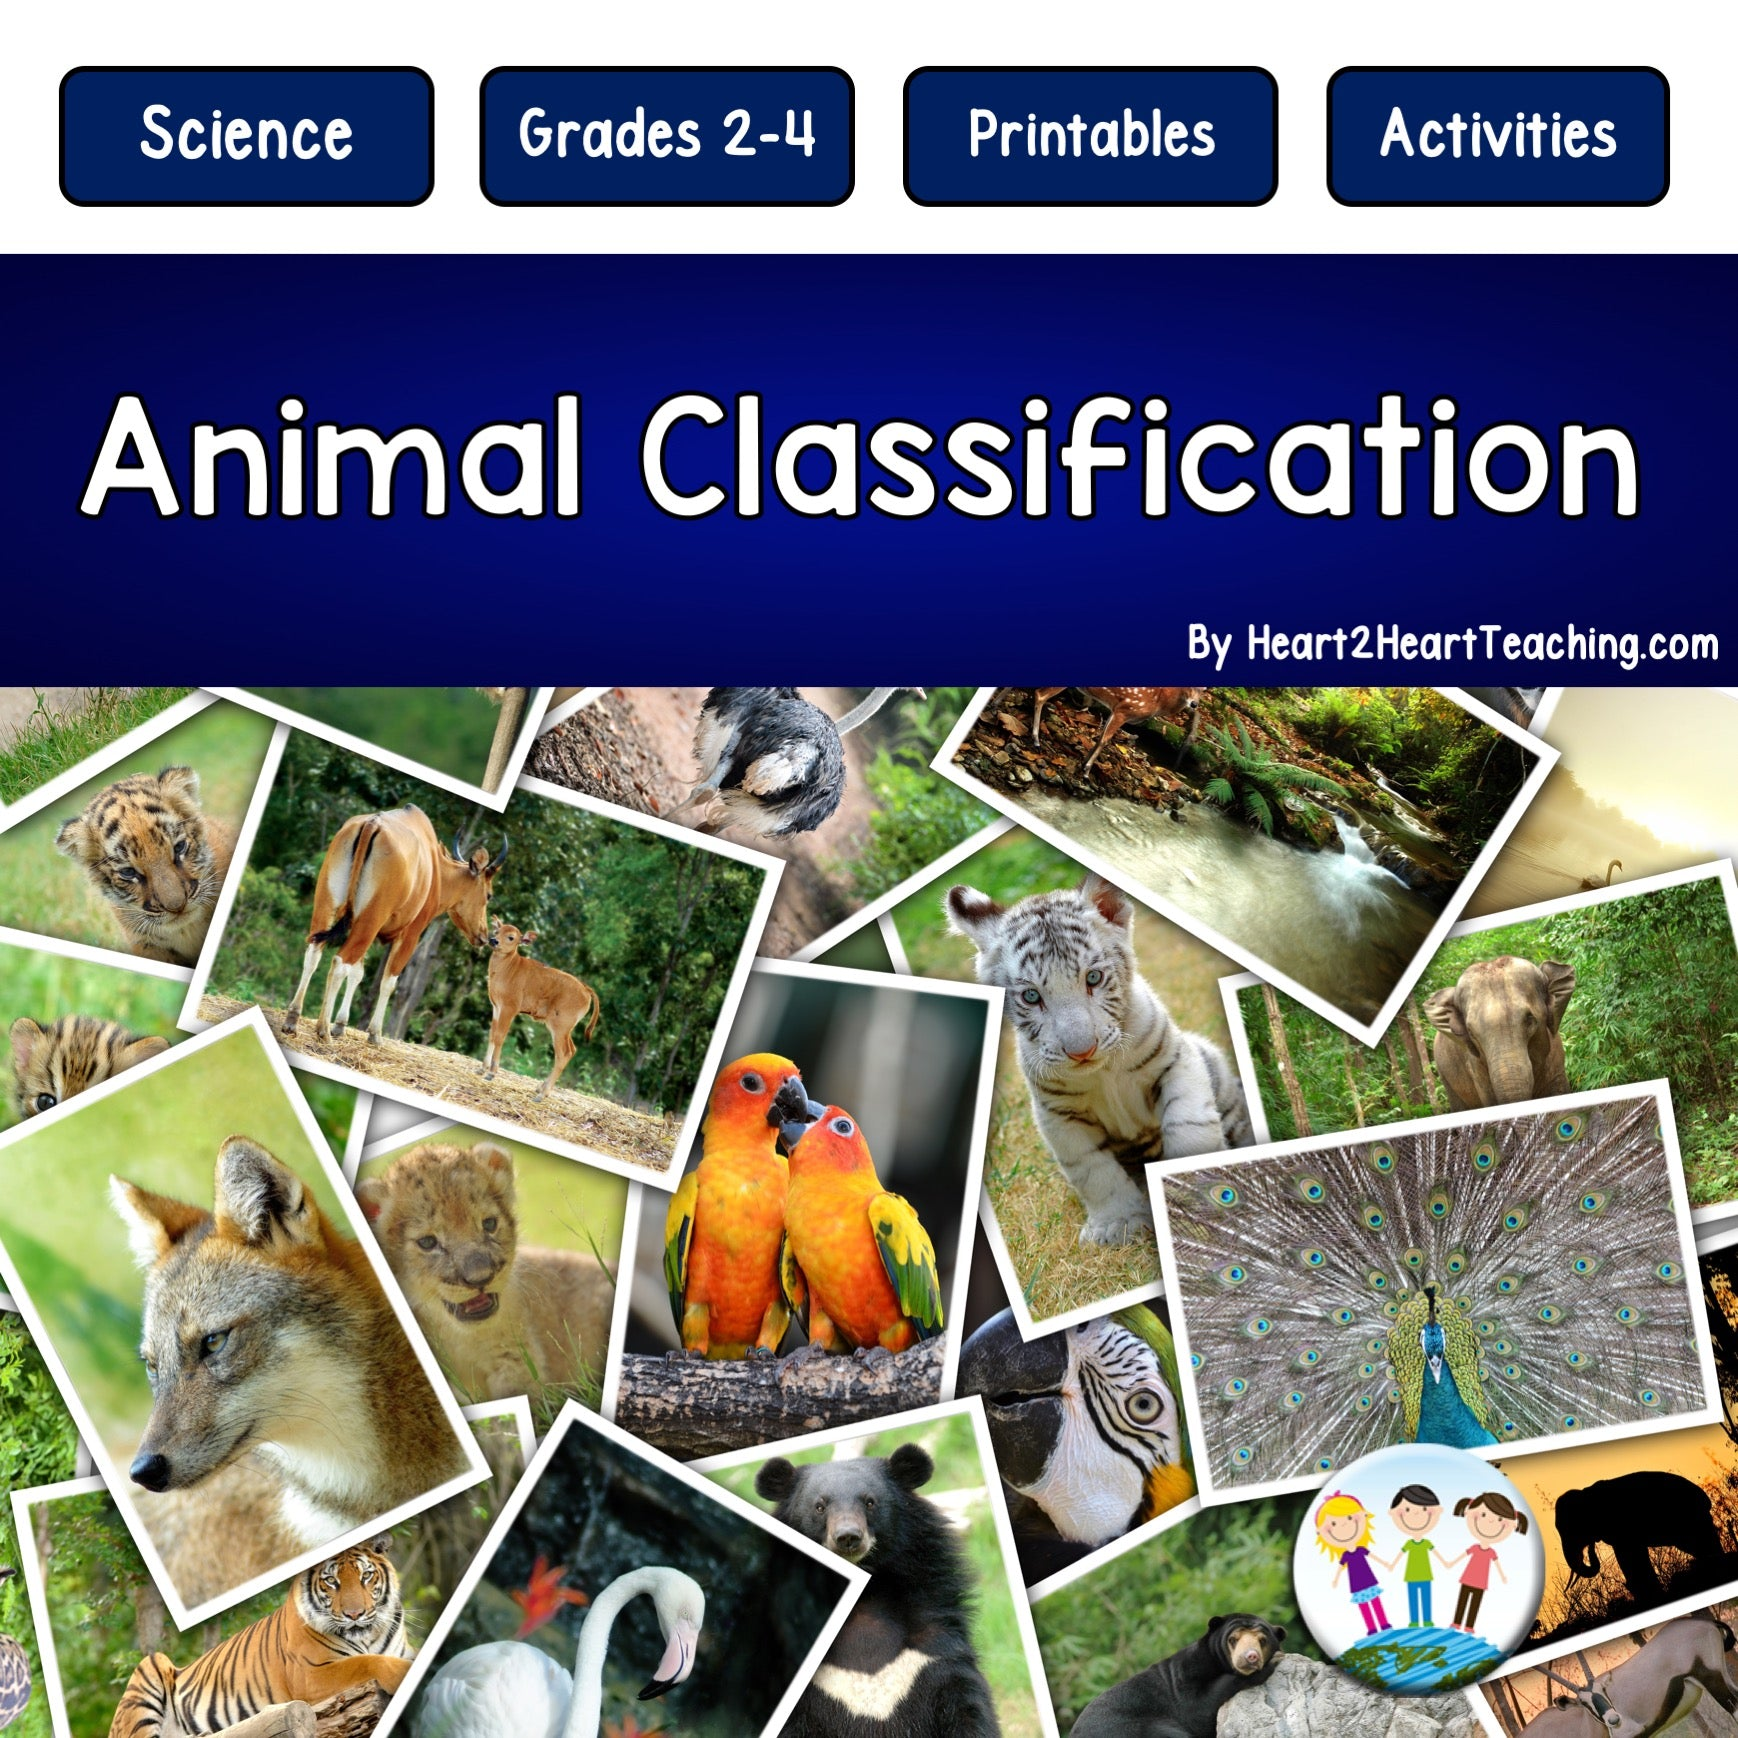 Animal Classification Unit with Mammals, Birds, Fish, Reptiles, and Am –  Heart 2 Heart Teaching